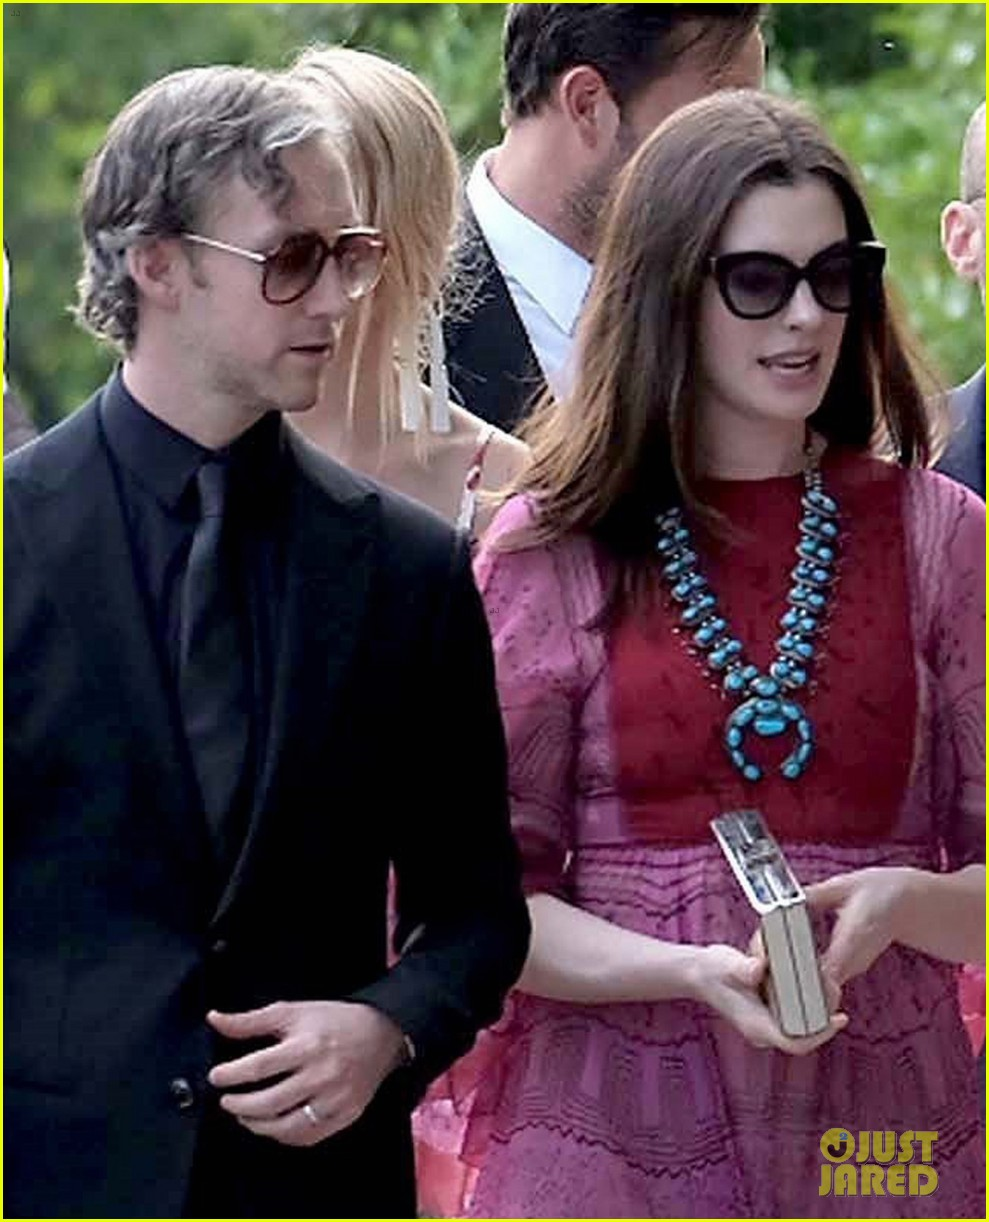 Anne Hathaway And Husband Wedding: Anne Hathaway & Emily Blunt Arrive For Jessica Chastain's